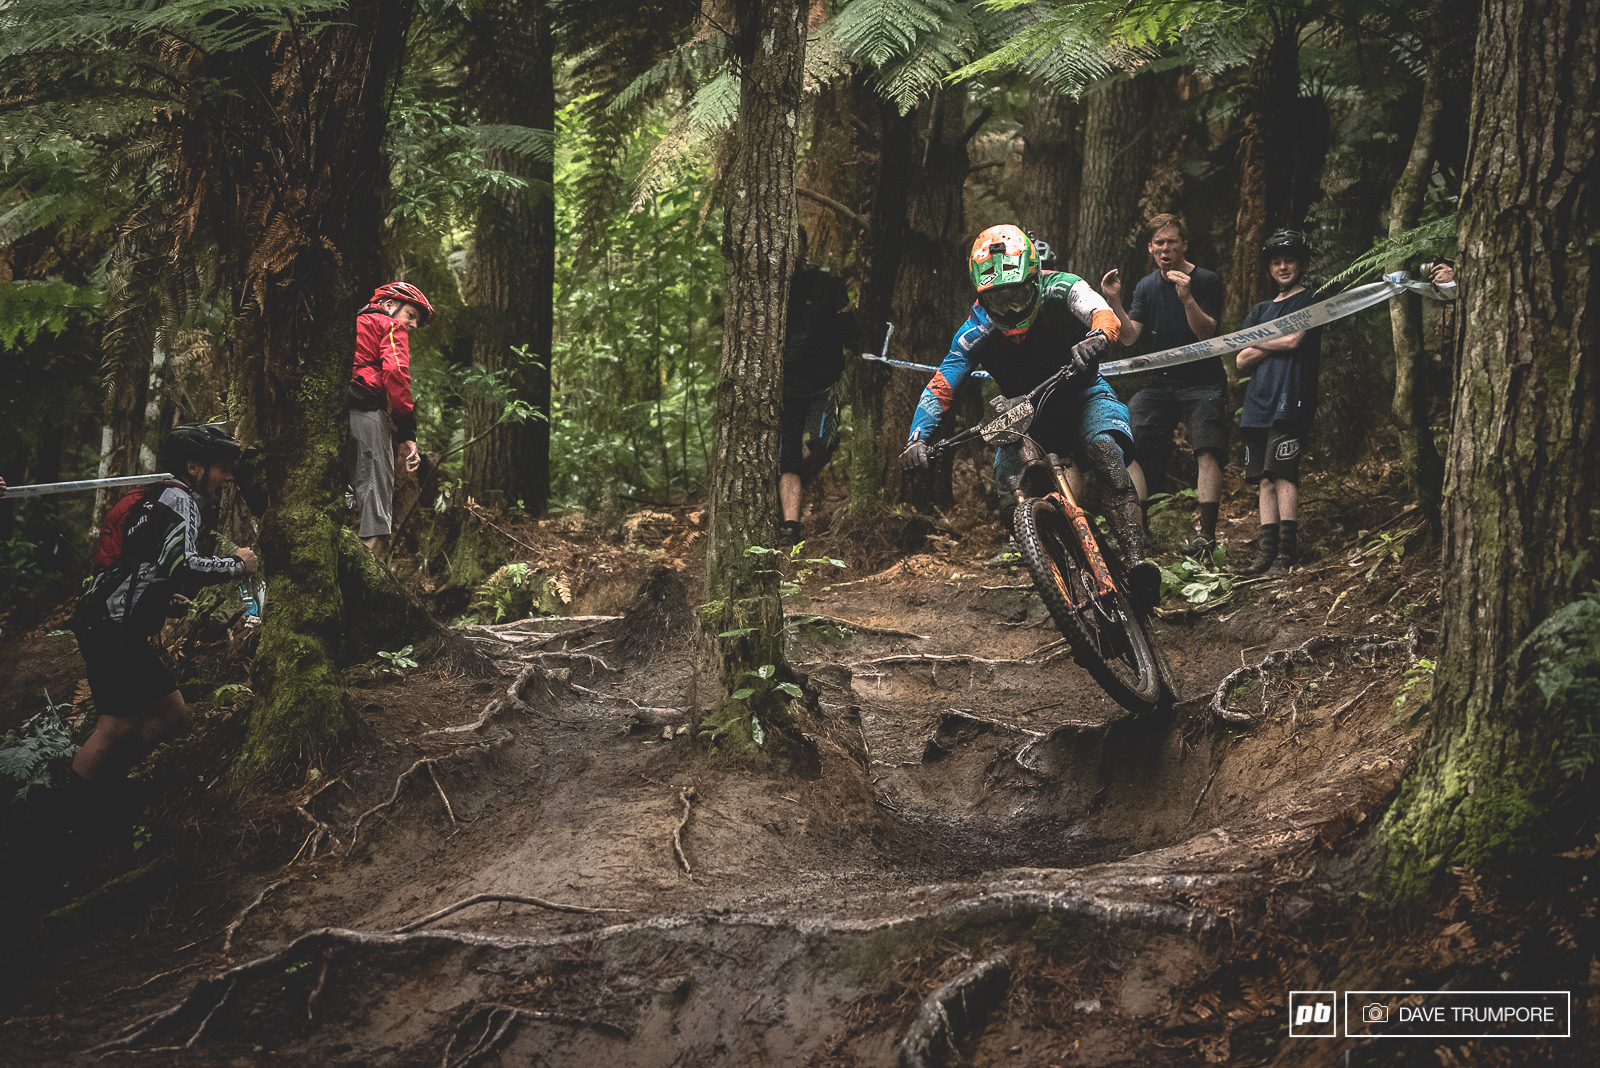 As an Irishman Greg Callaghan knows a thing or two about how to ride mud and roots.